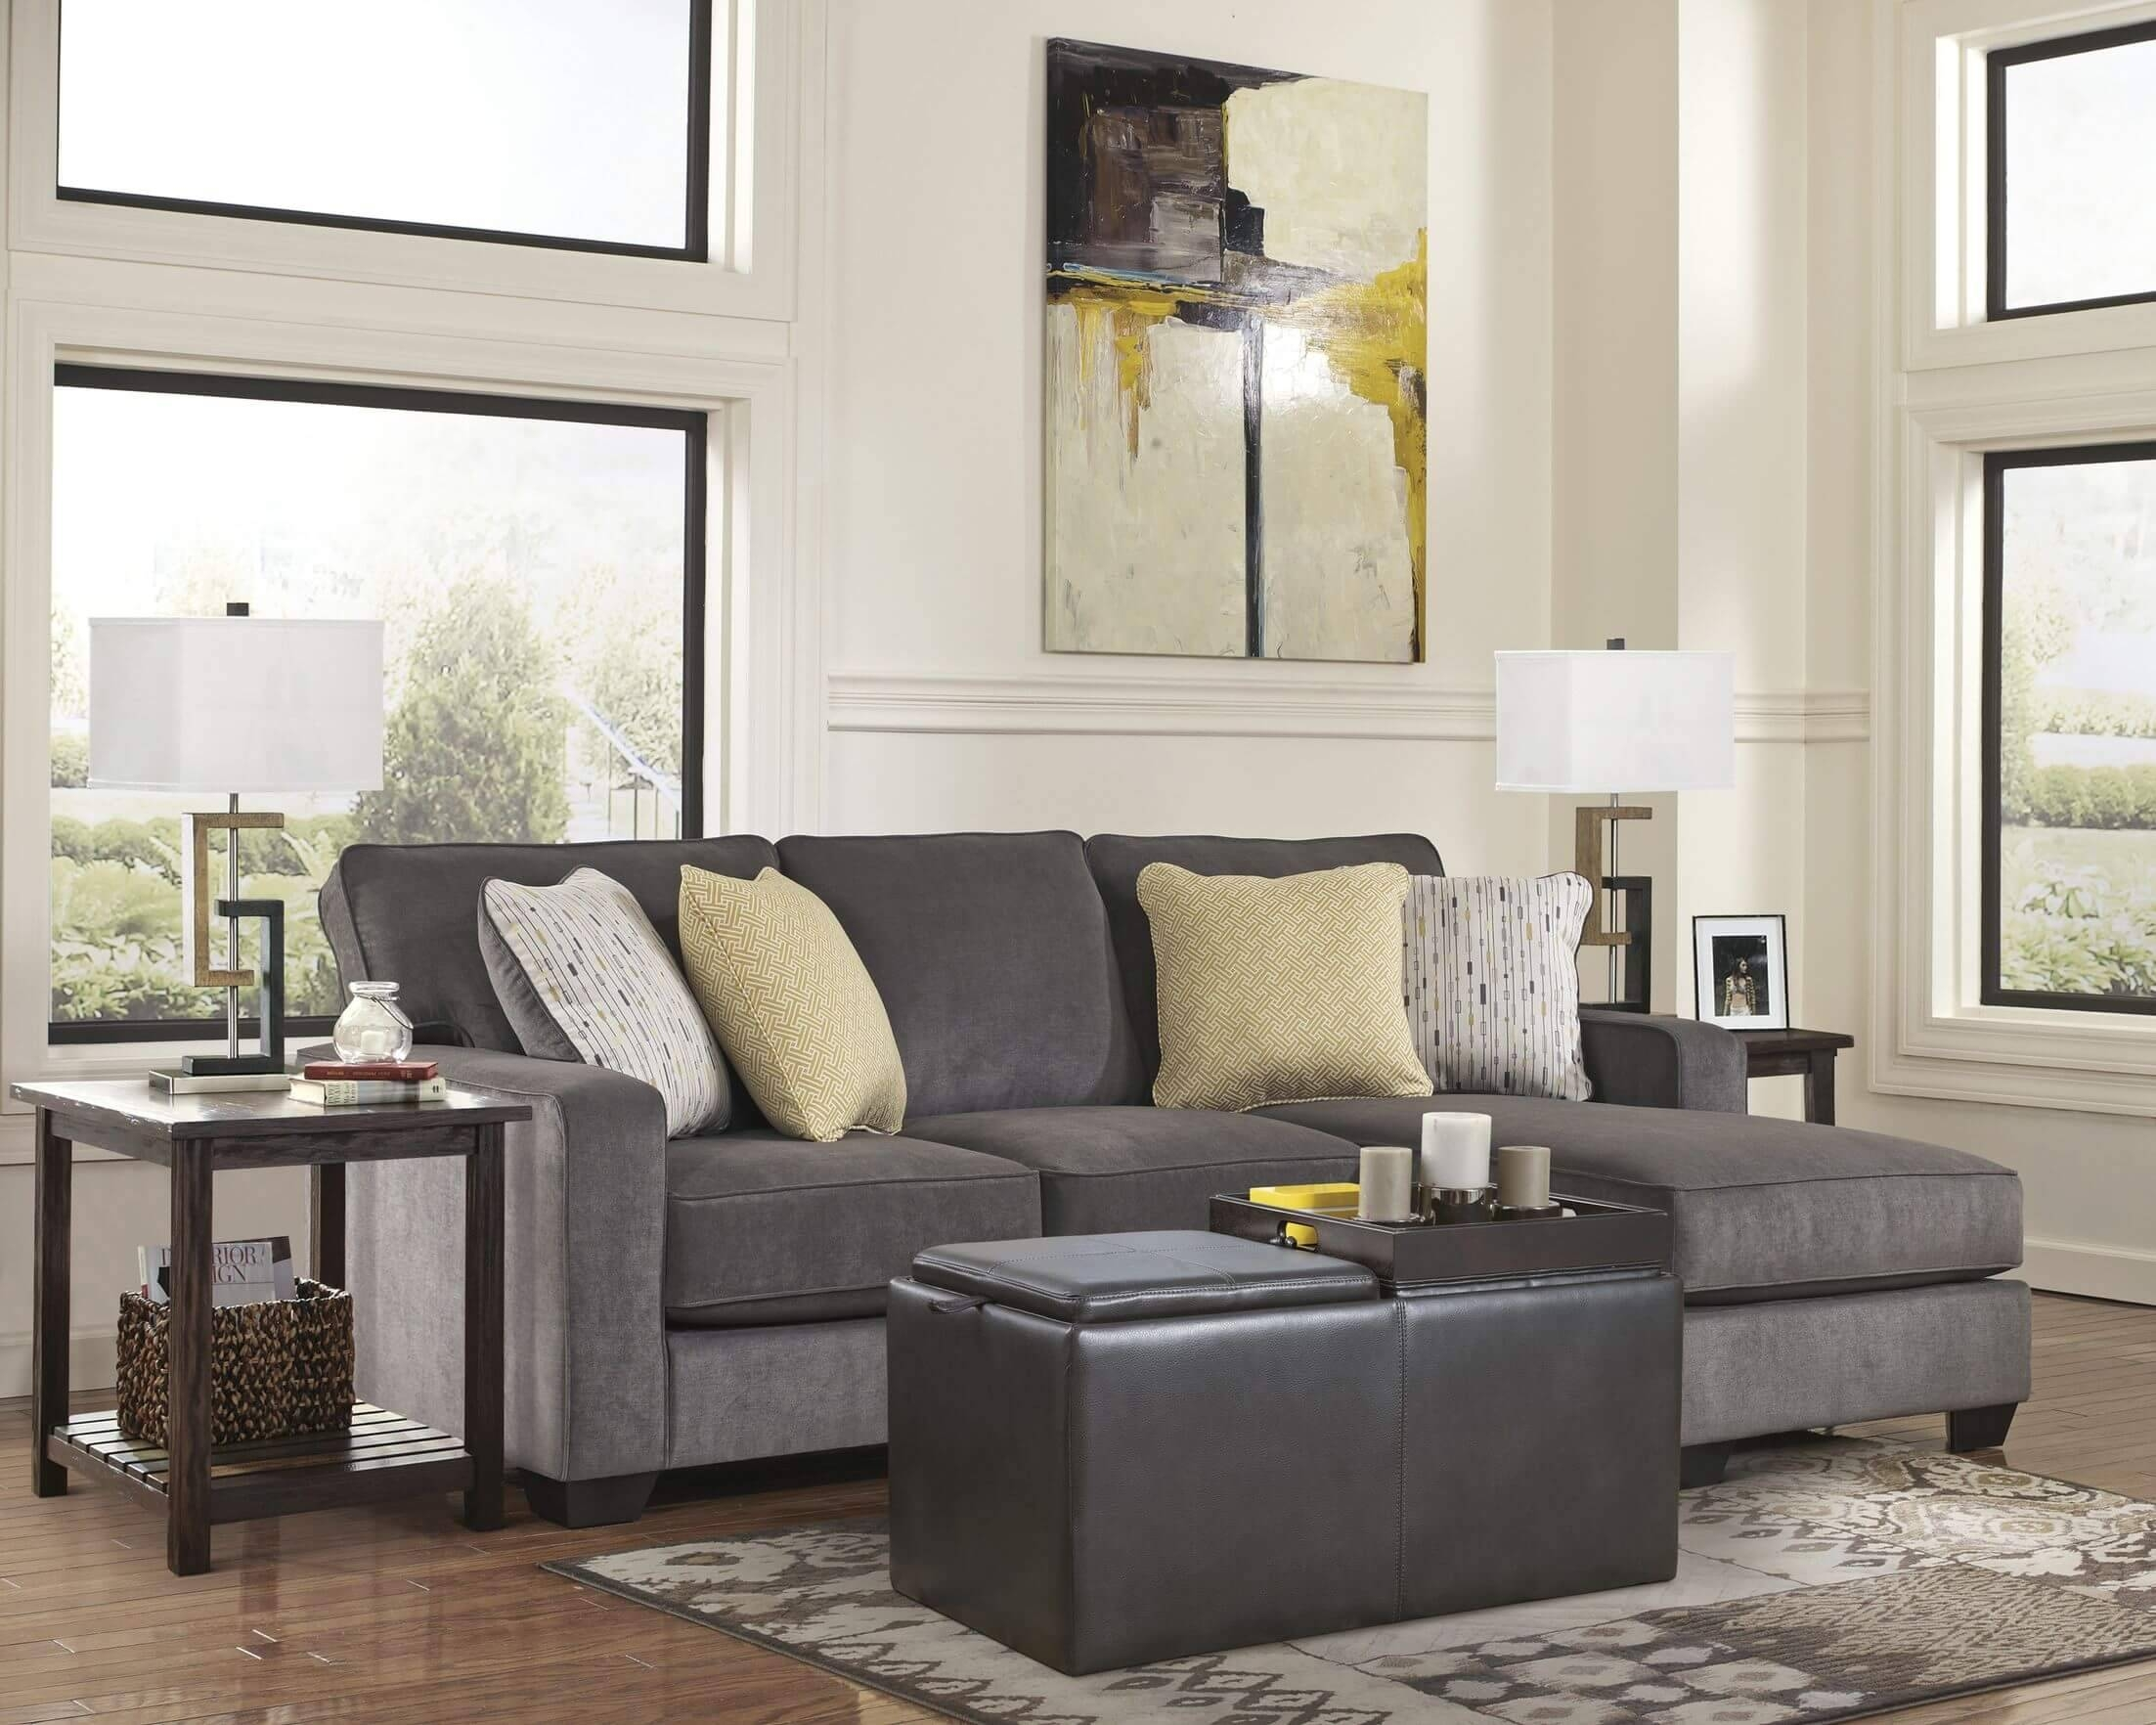 Coffee Table For Sectional Sofa With Chaise Top Ln8 | Umpsa 78 Sofas  Regarding Coffee Table